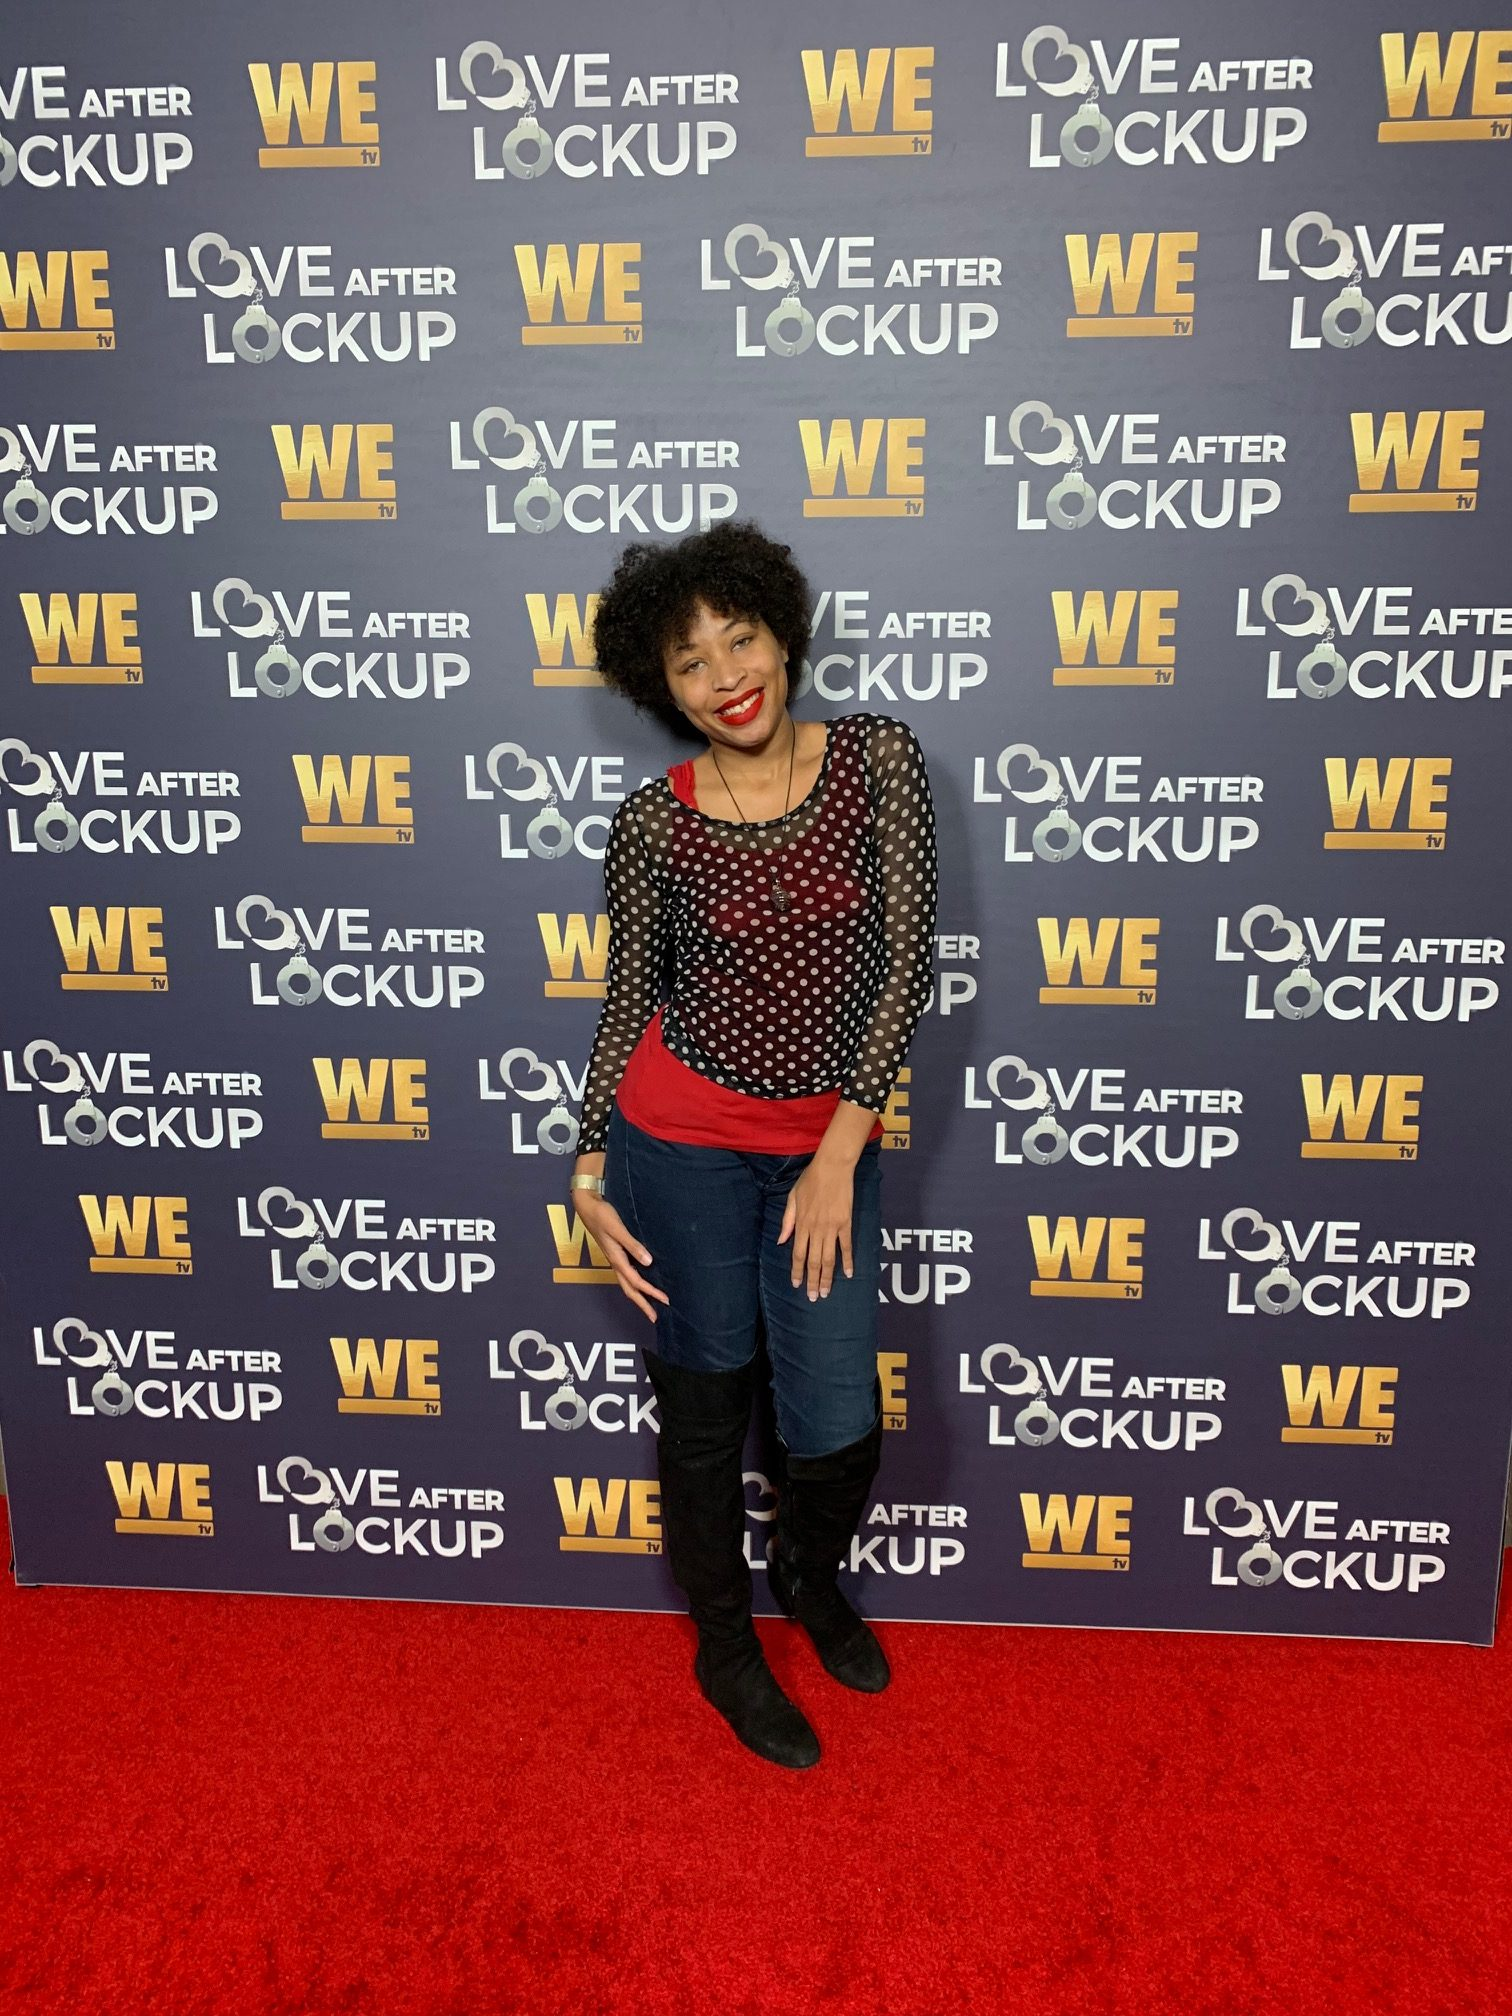 WETV LOVE AFTER LOCKUP SEASON TWO [PREMIERE + REVIEW] - Kiwi The